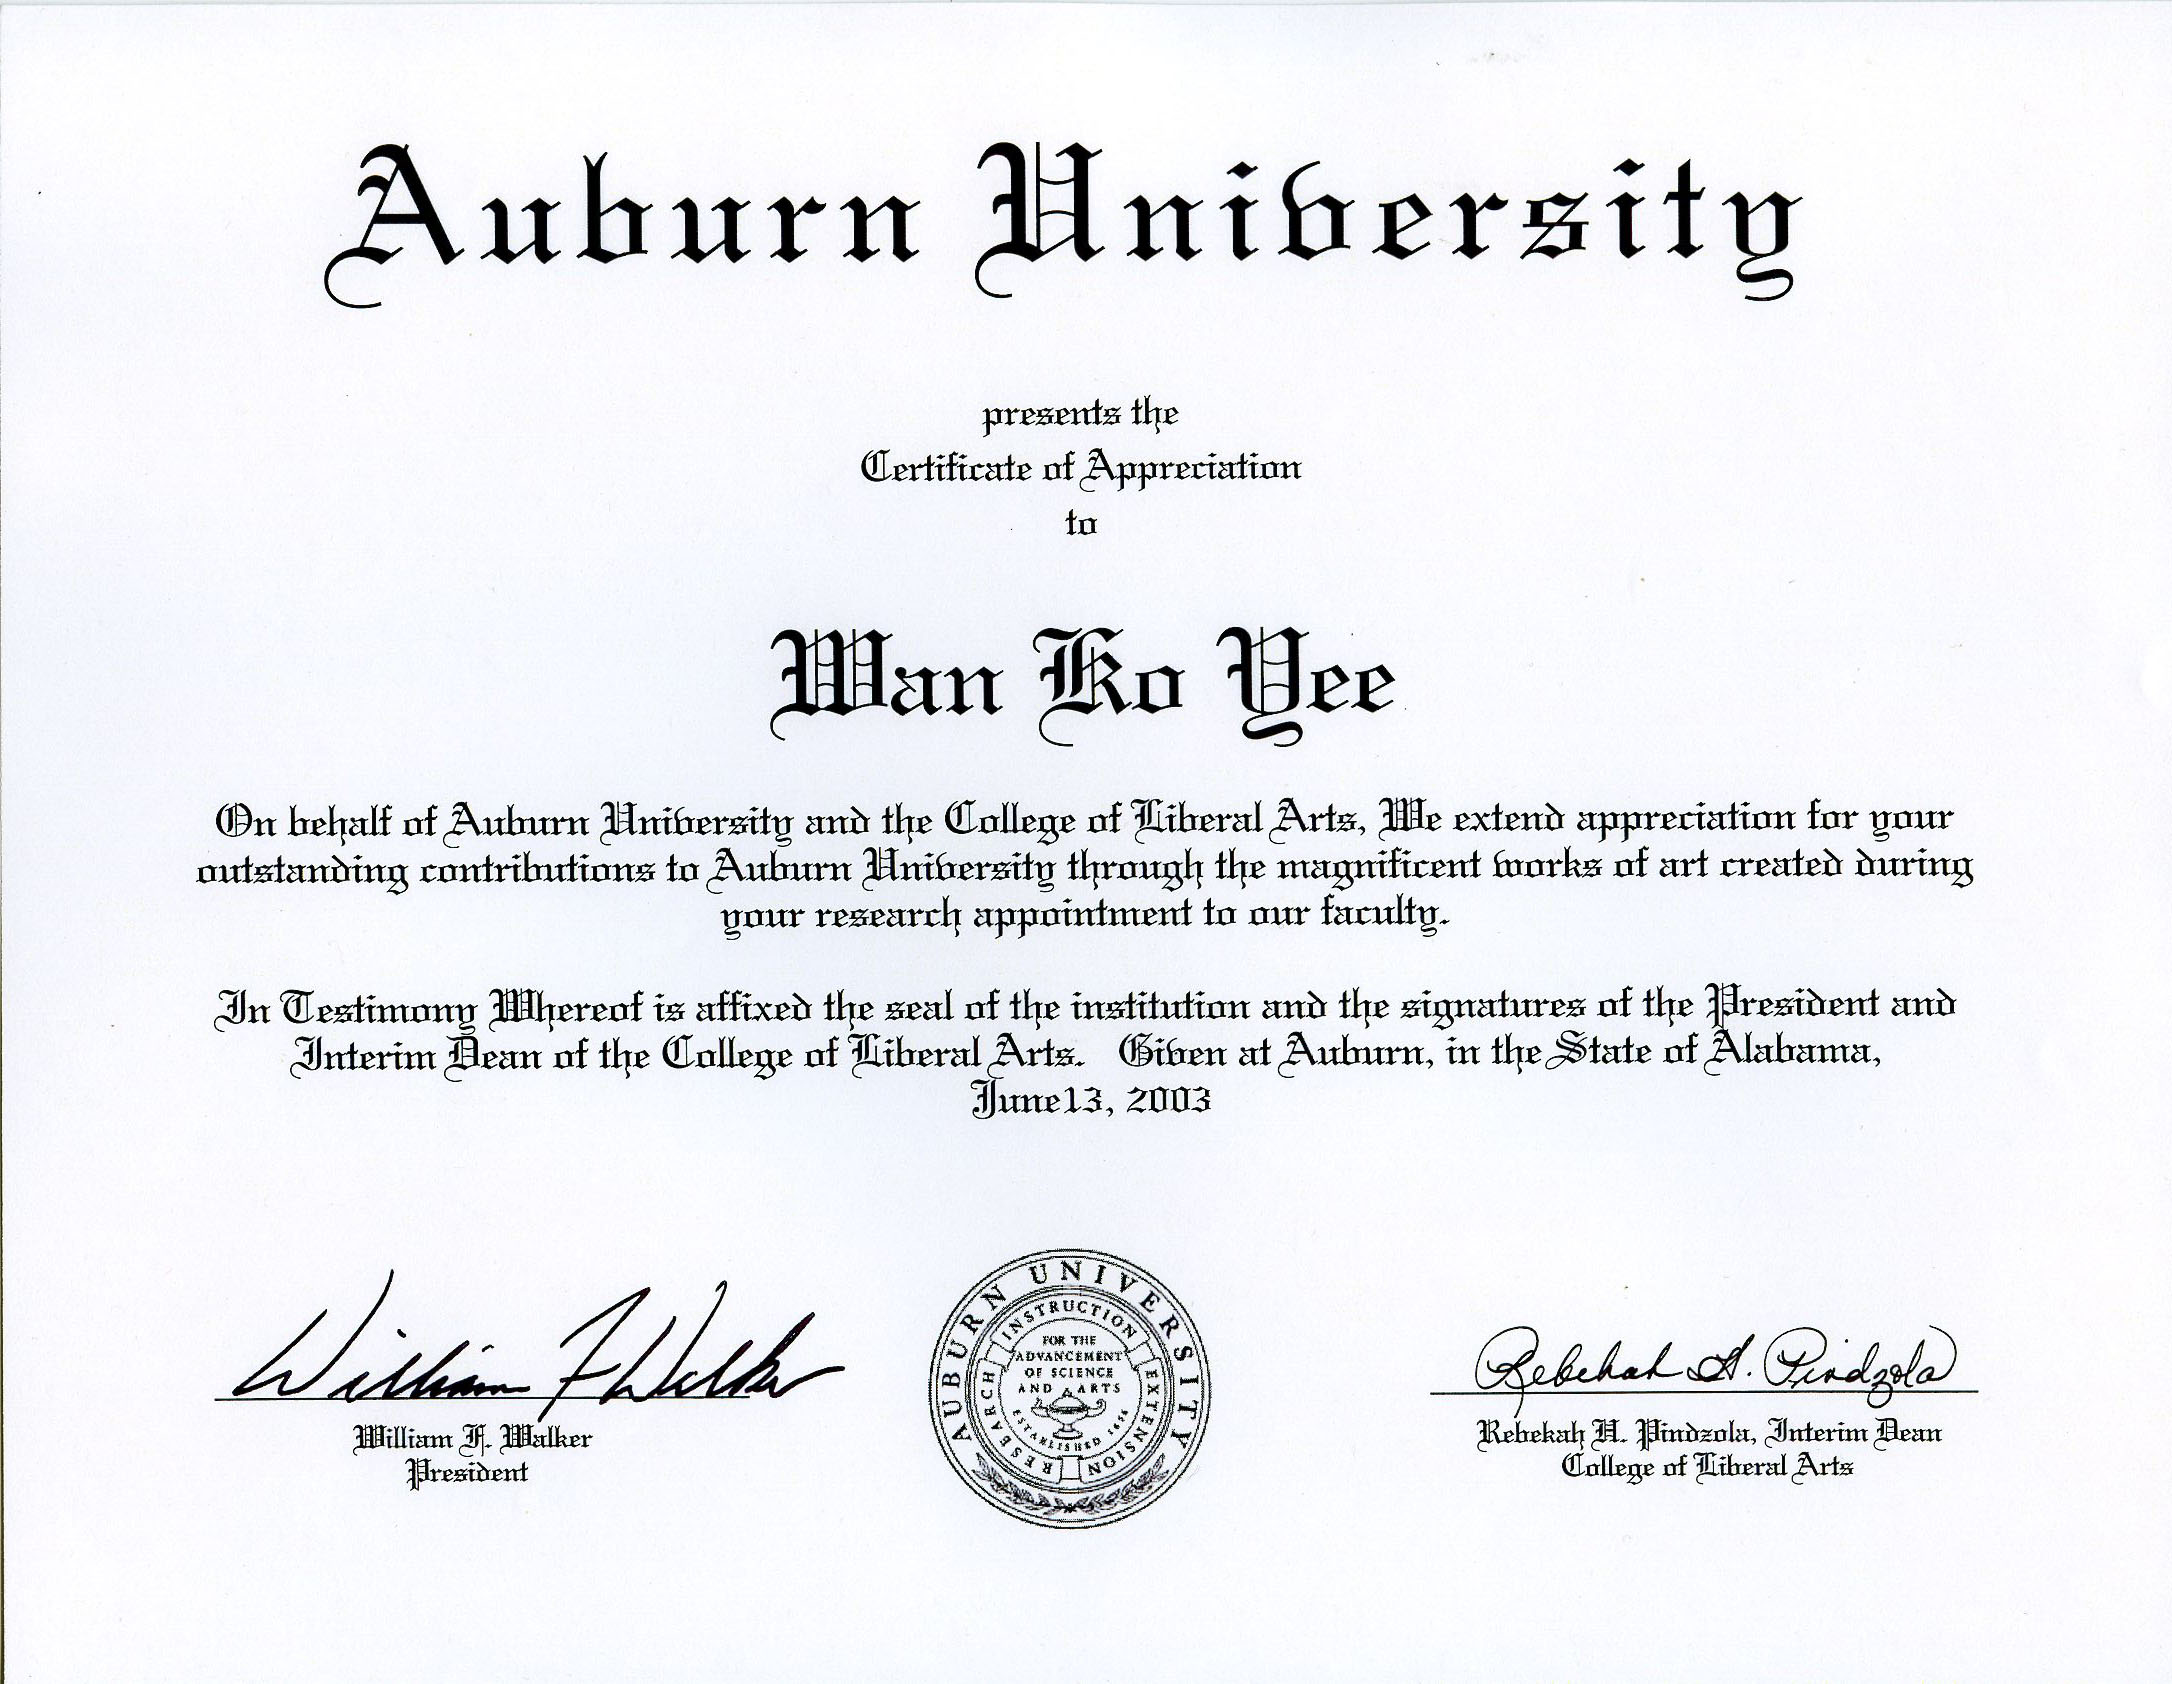 Certificate-of-Appreciation-issued-by-Auburn-University-to-honor-H.H.-Dorje-Chang-Buddha-III-while-His-Holiness-the-Buddha-was-a-professor-at-the-university